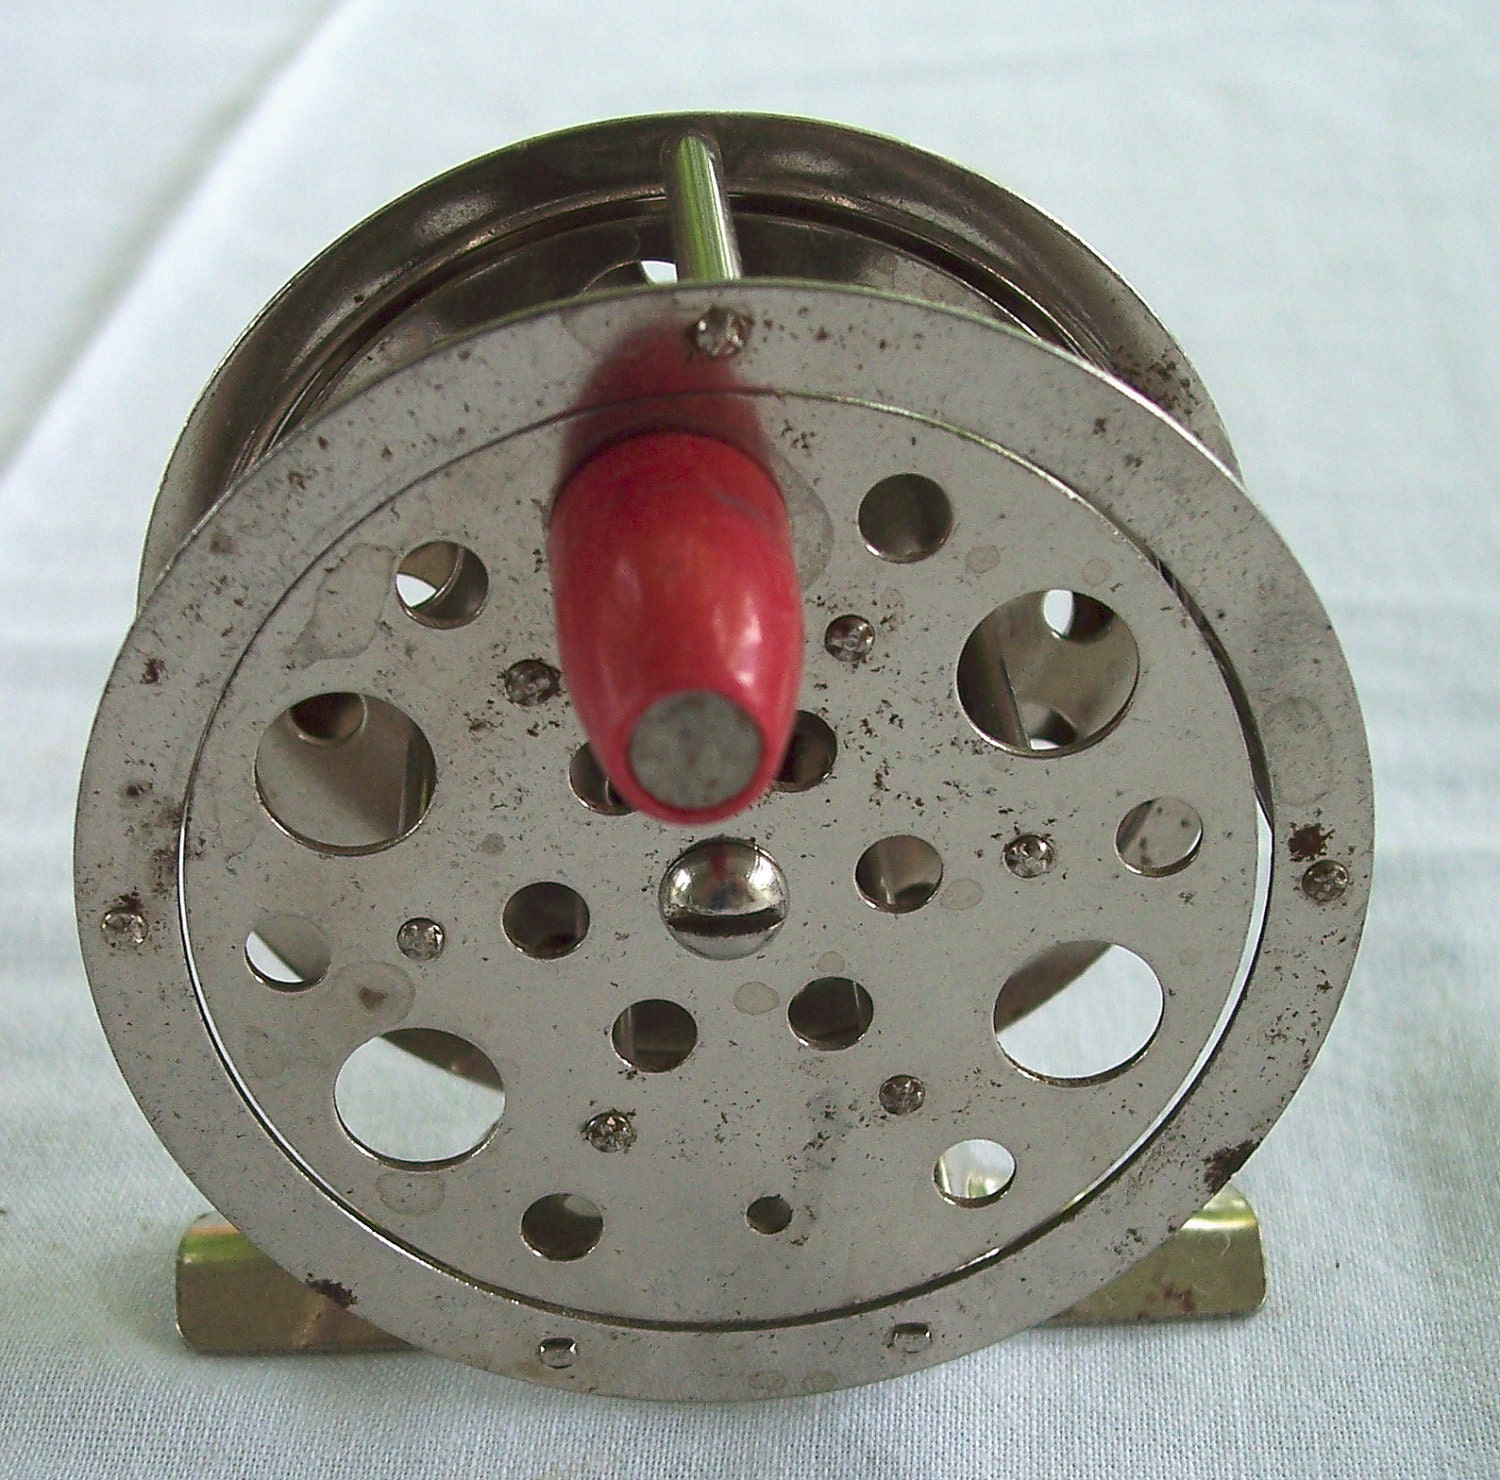 Vintage fishing reel made in the usa for Fishing reels made in usa